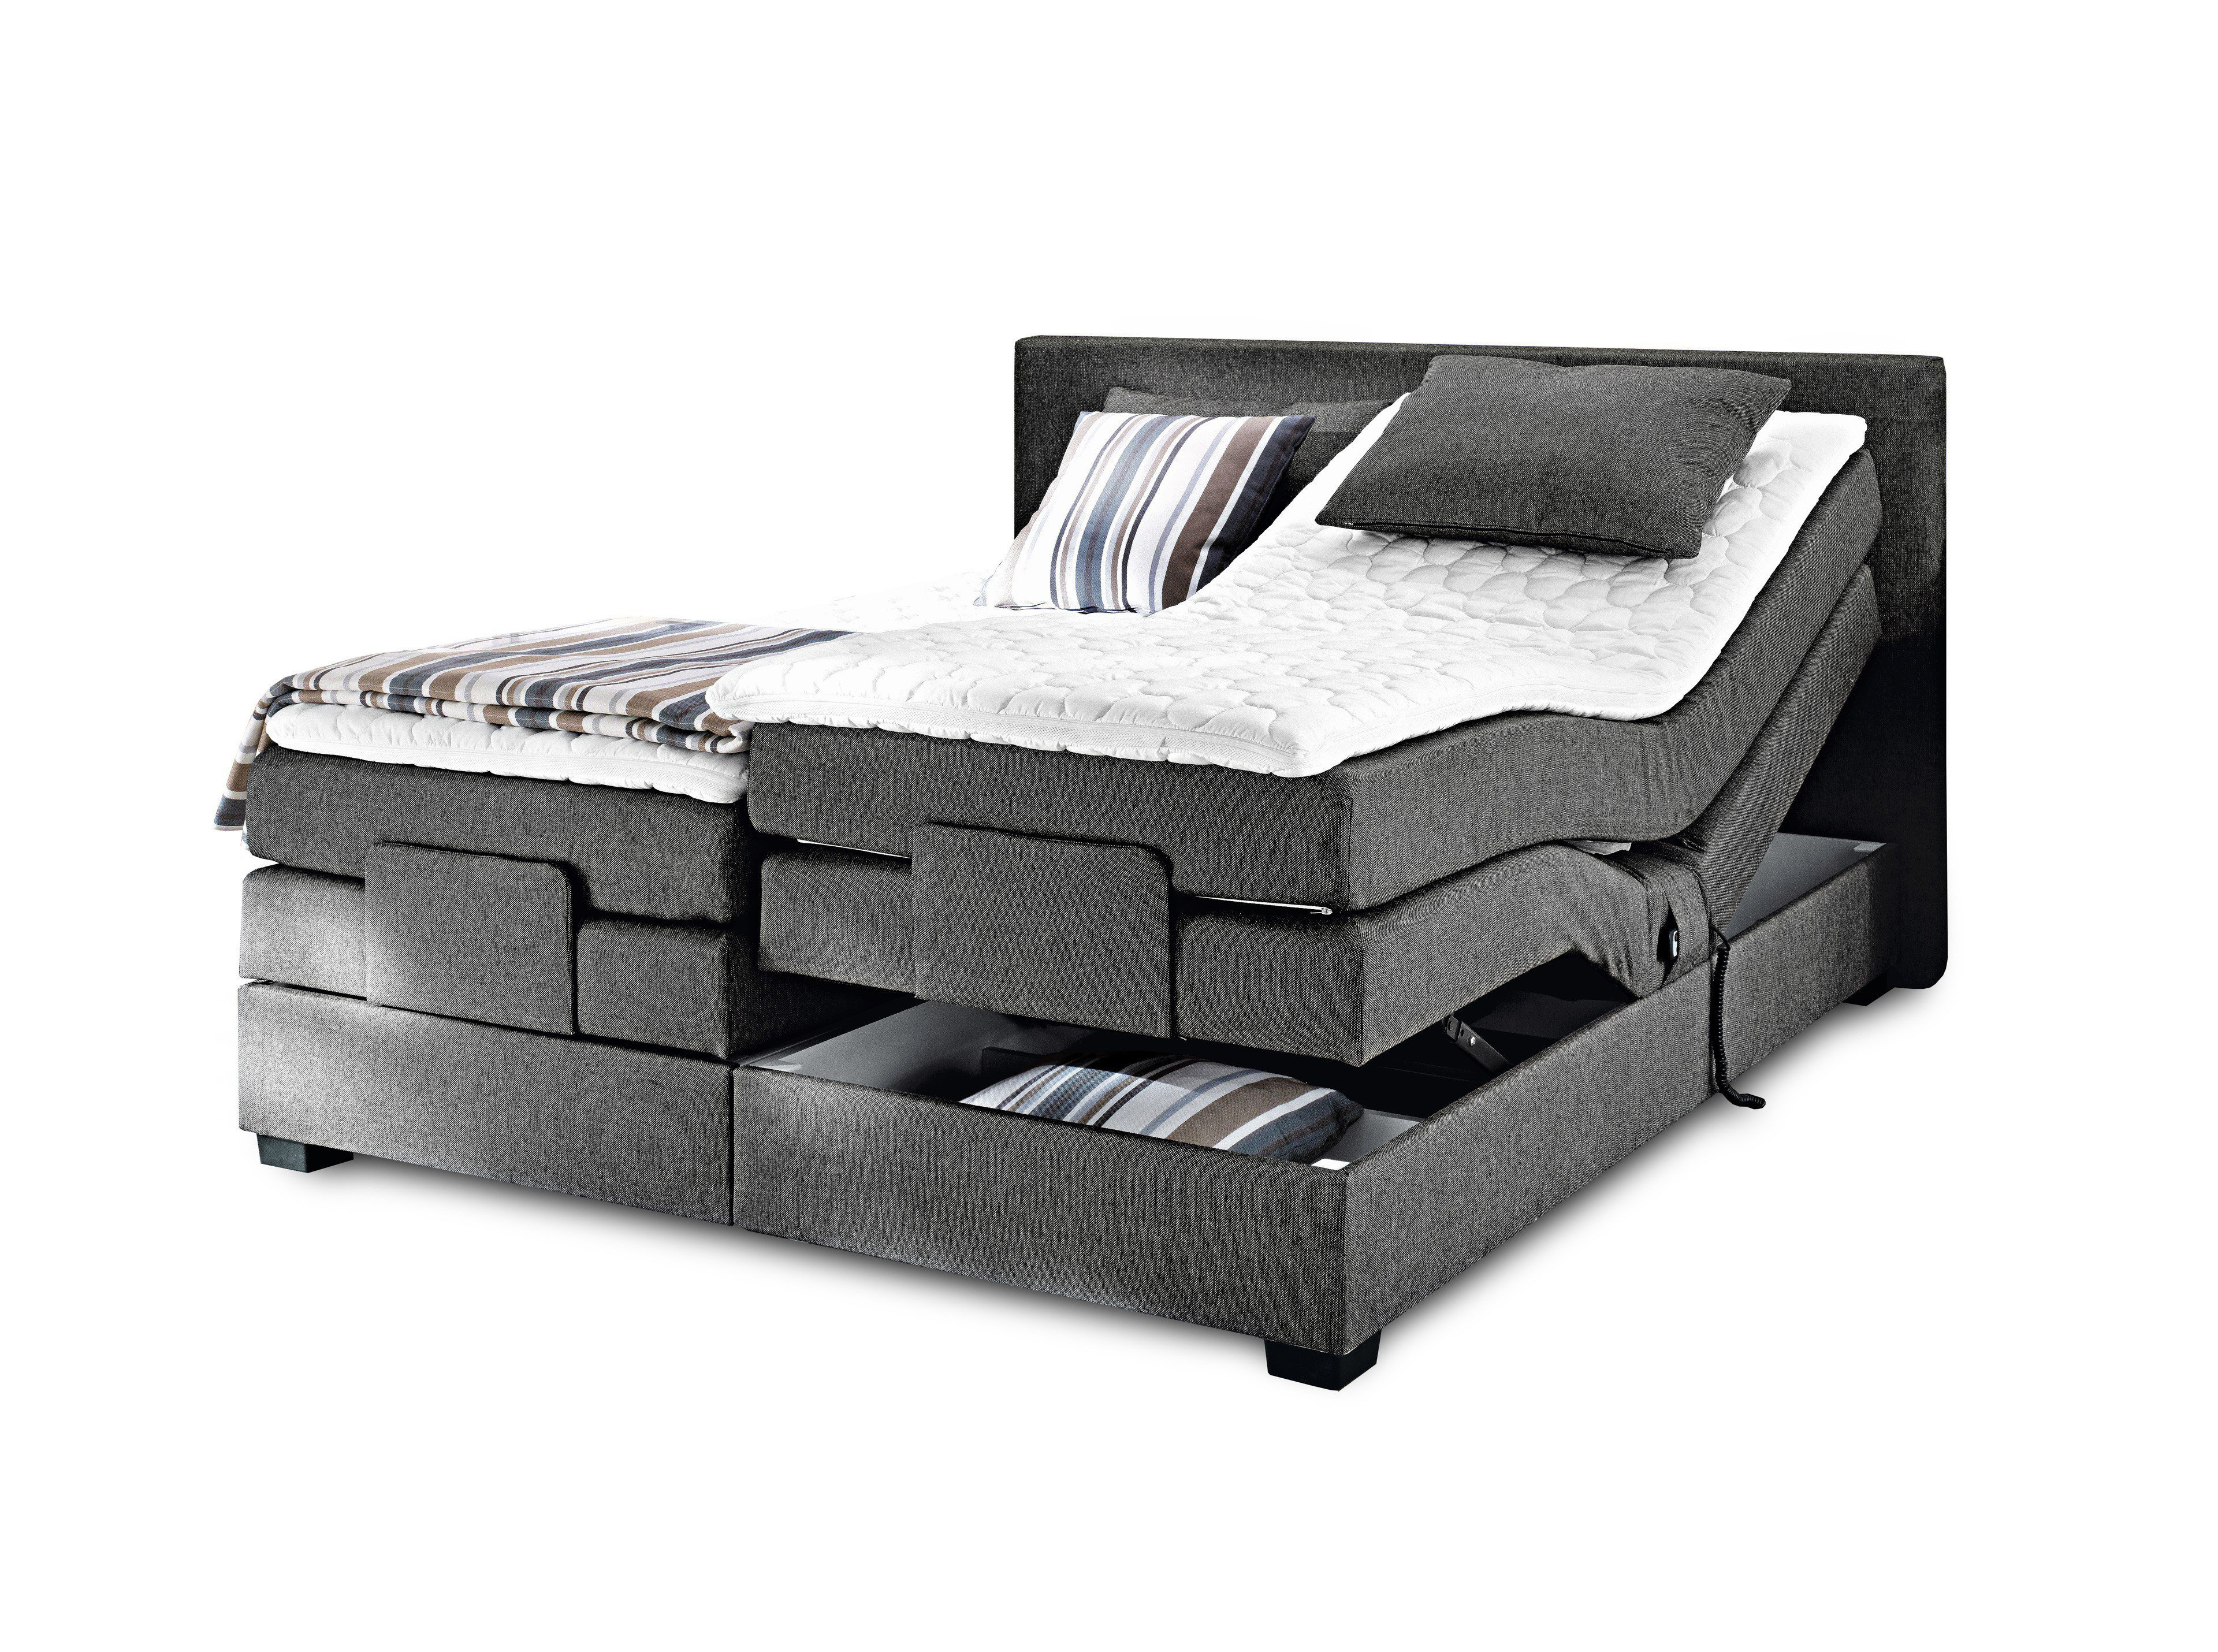 boxspringbett mit motor filou von oschmann in grau m bel letz ihr online shop. Black Bedroom Furniture Sets. Home Design Ideas